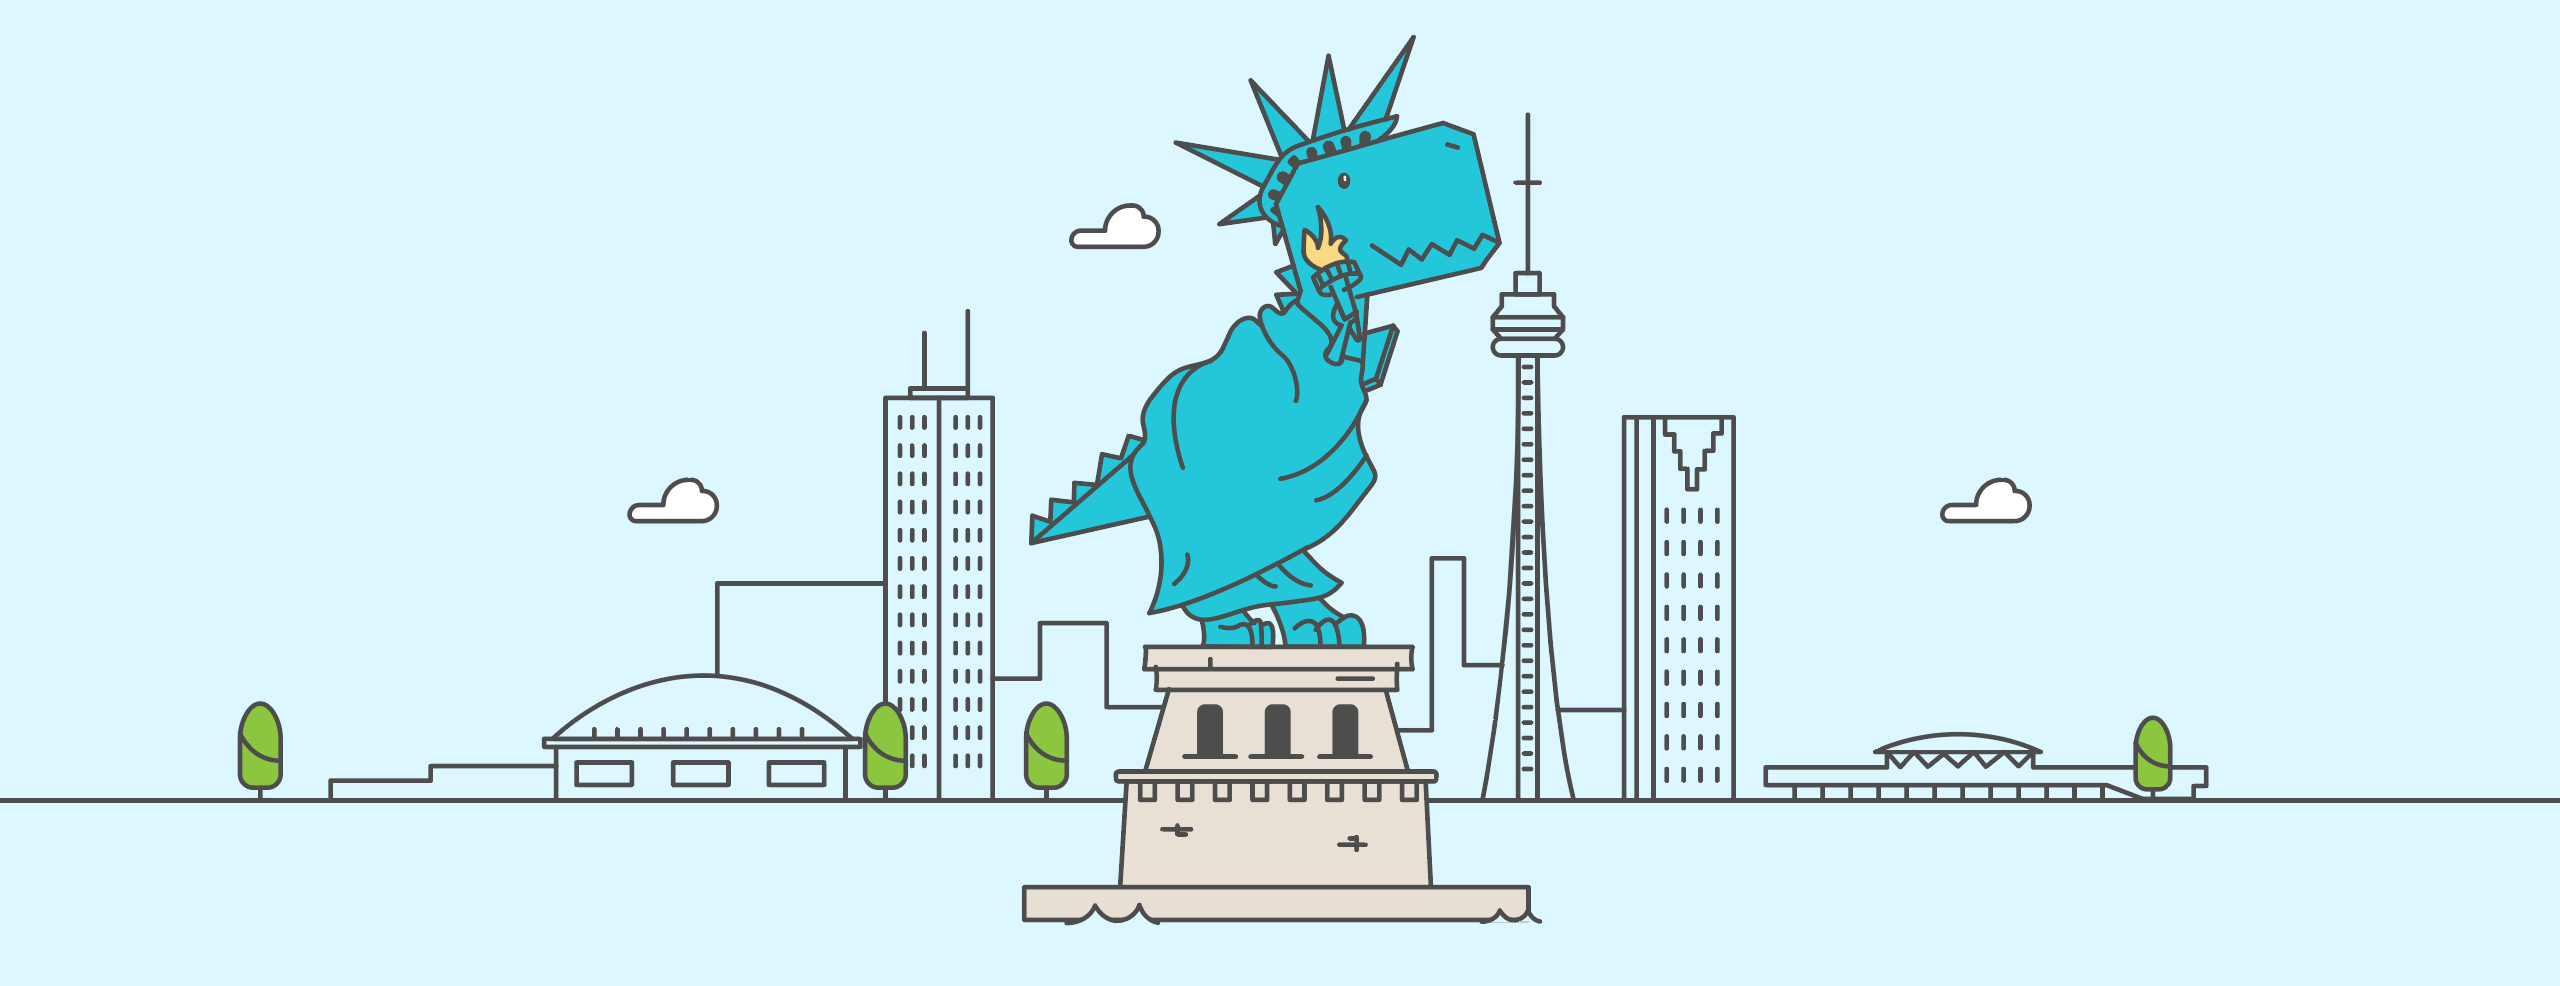 Our mascot, Trevor, with the NY skyline